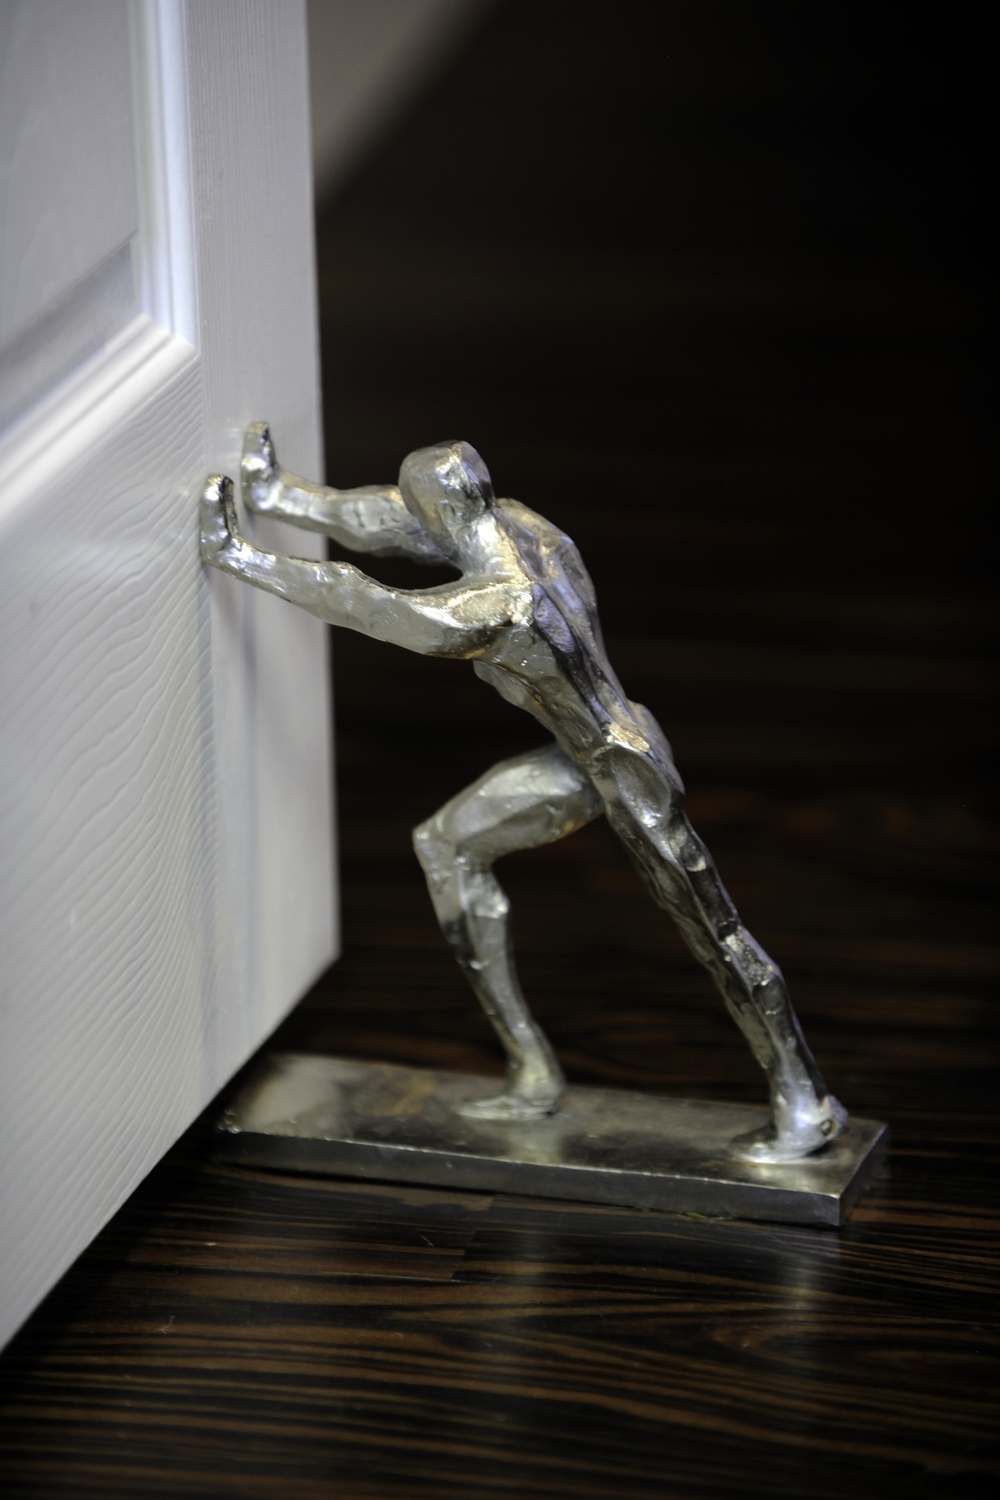 Whimsical details, such as this fun doorstop, are found throughout Kate & Co.